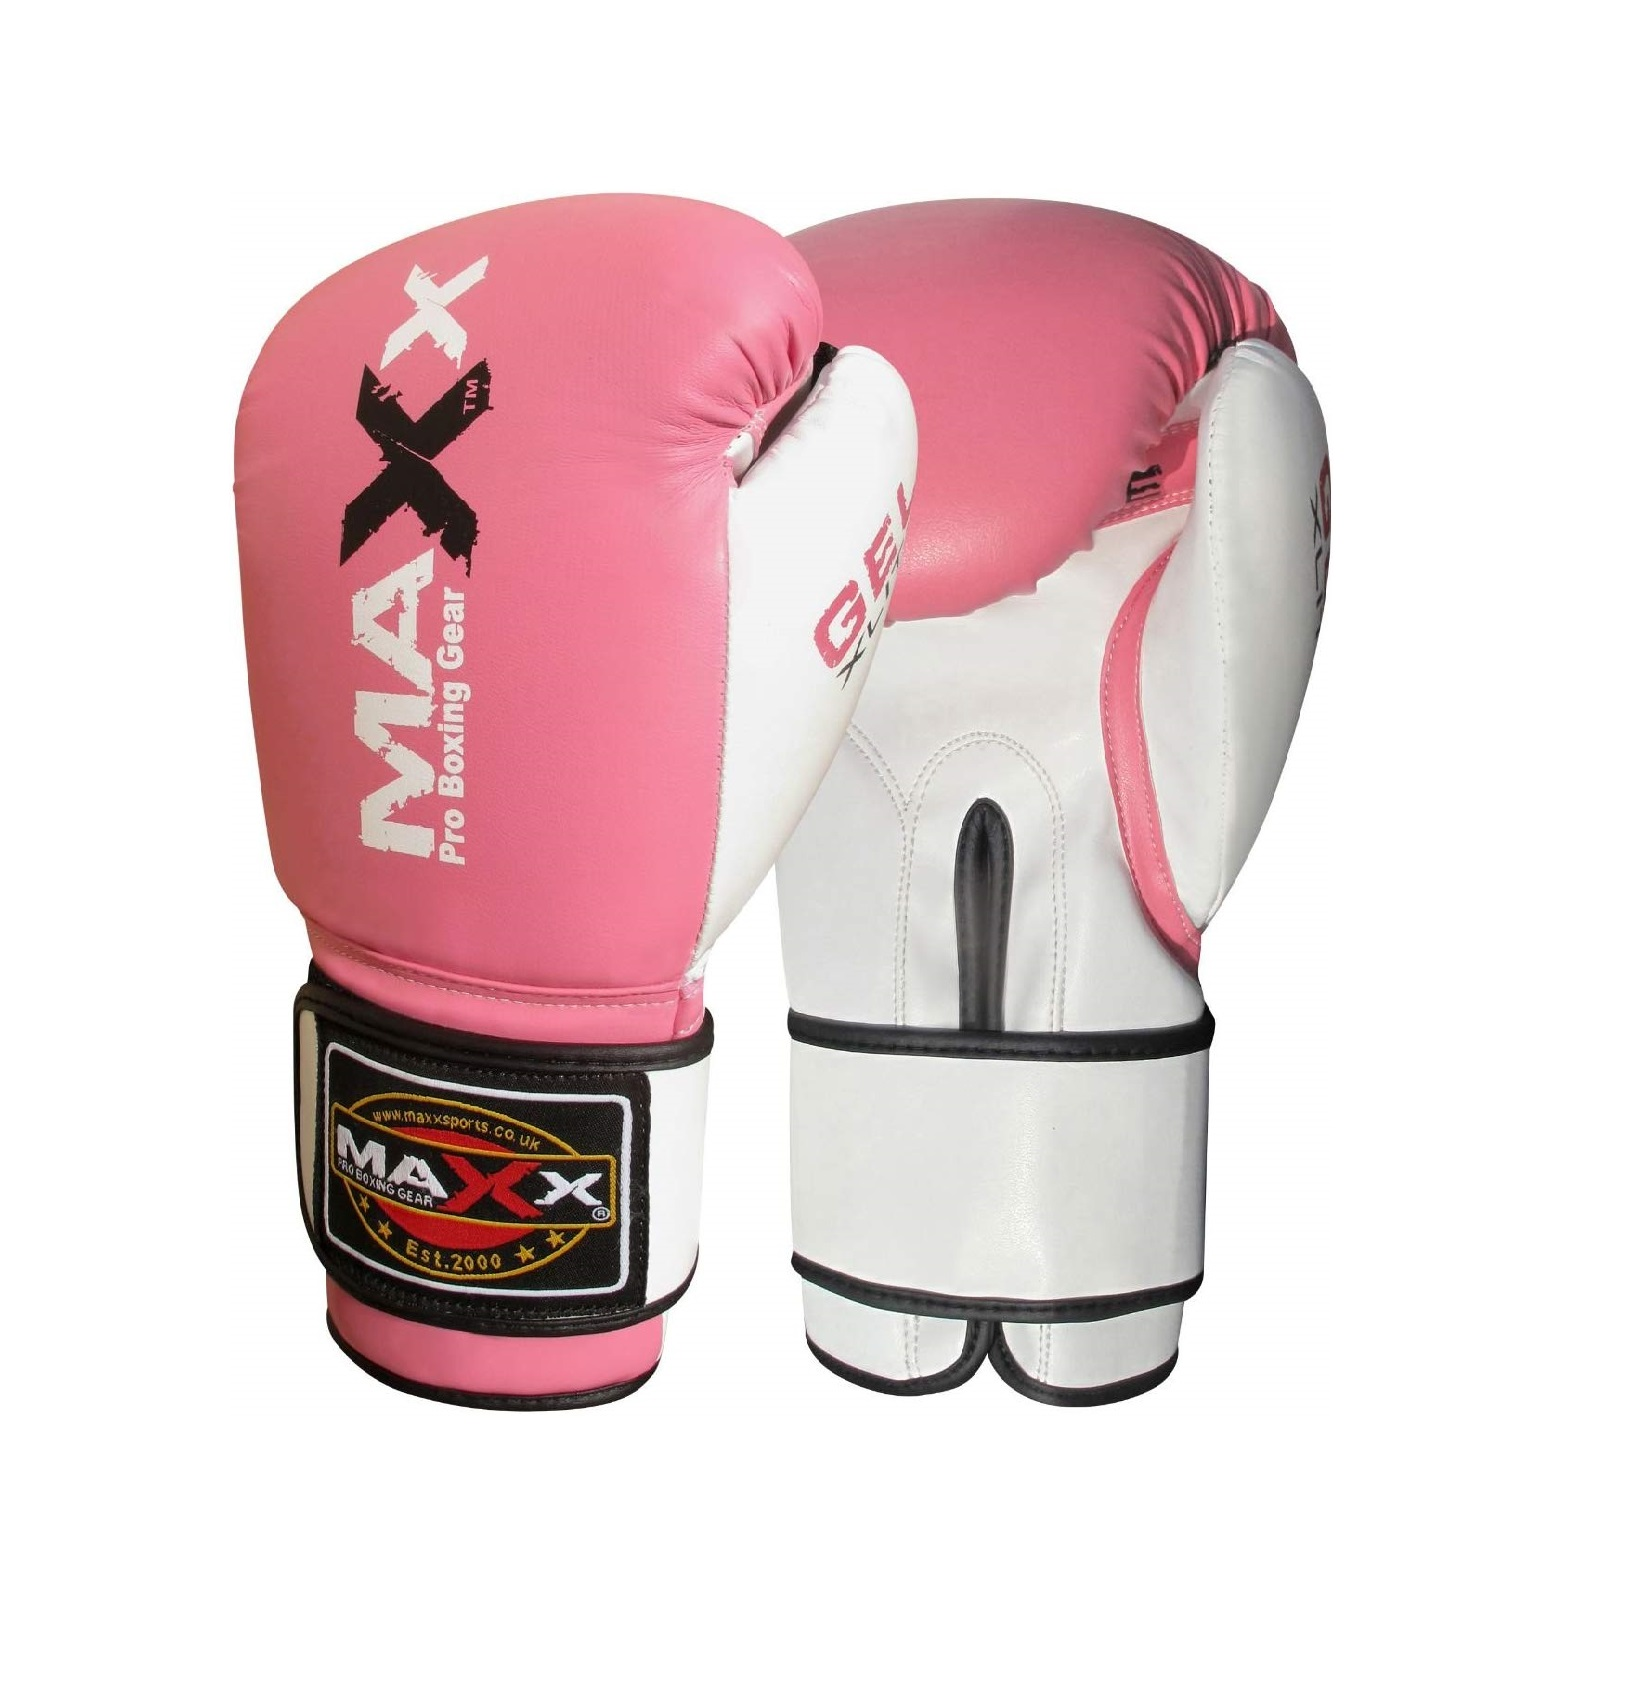 Maxx Jet Black GEL ICON range Leather Boxing Gloves MMA Training Fight Sparring Punching kickboxing